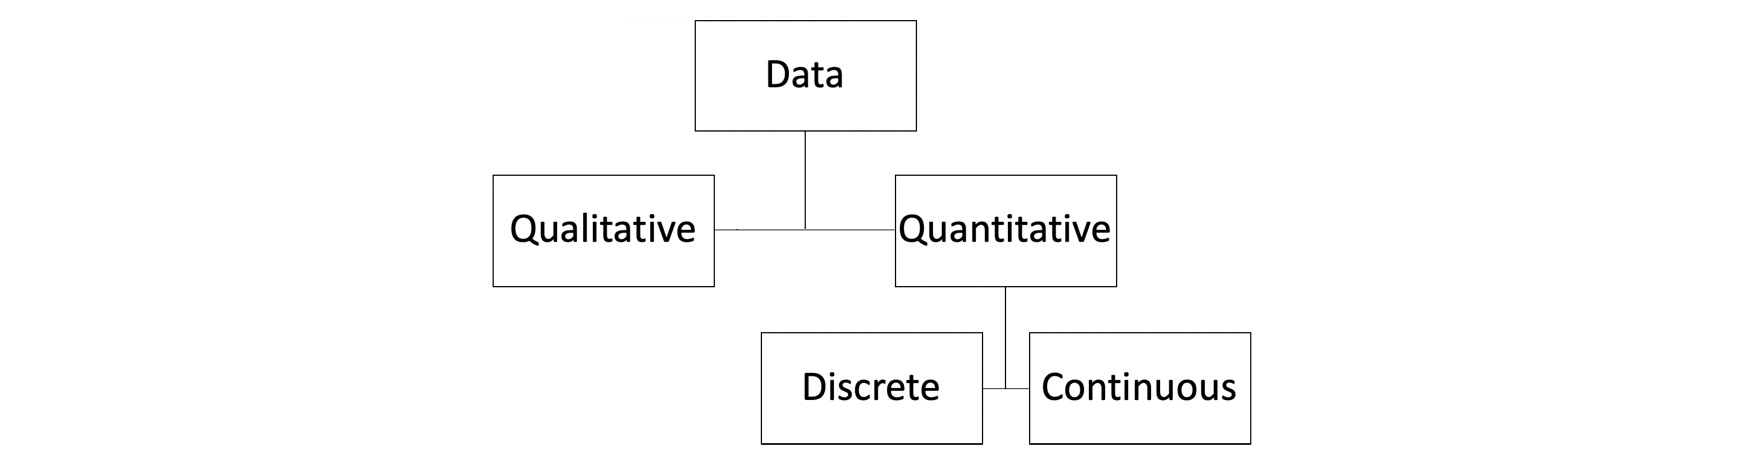 Figure 1.1: The classification of types of data